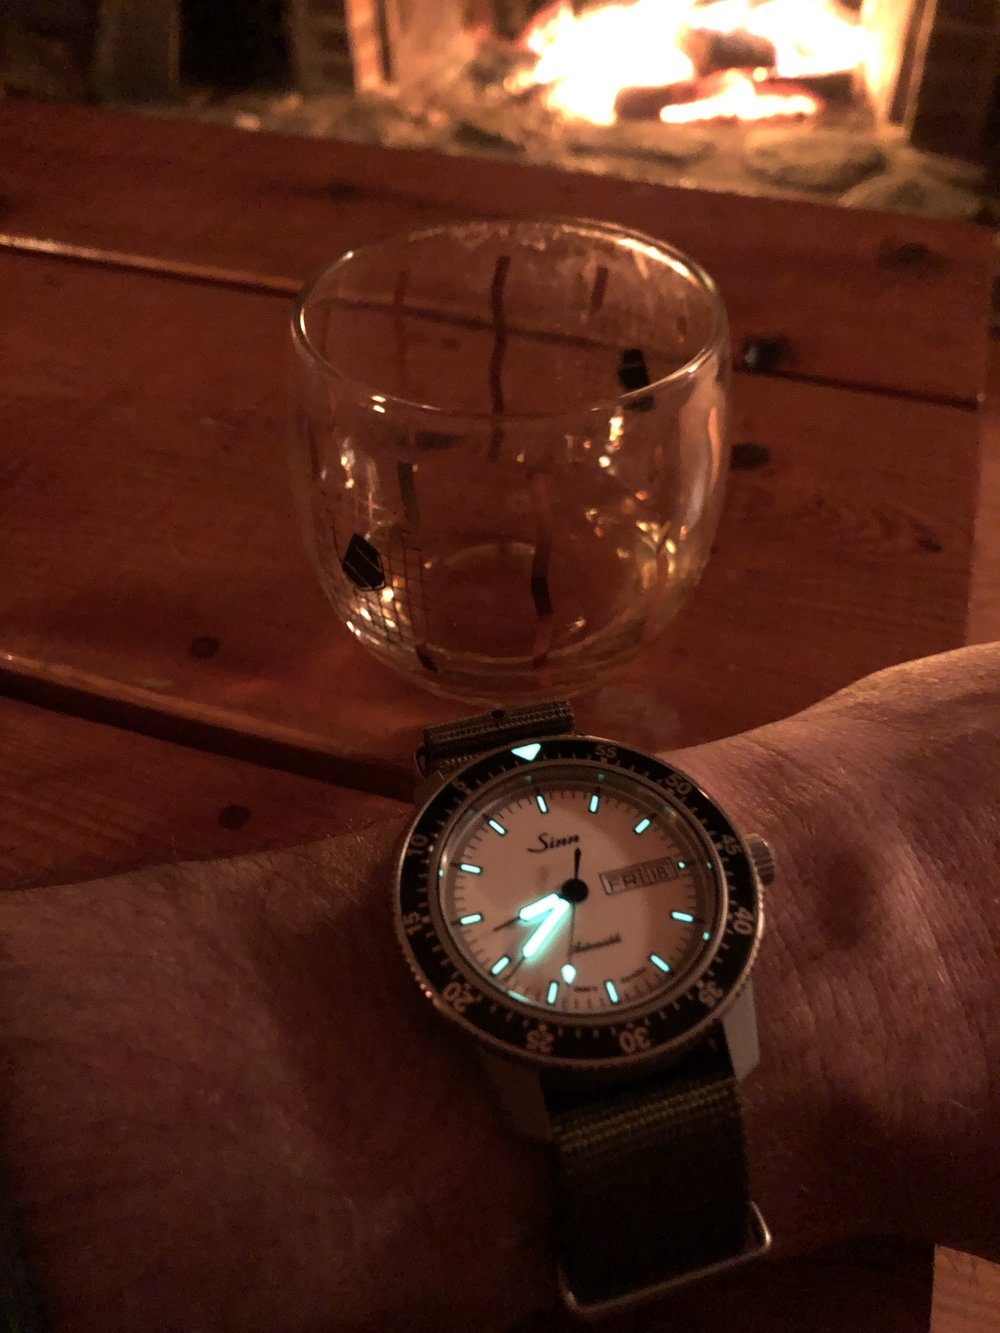 The 104 has strong lume. The clipped index at 3:00 makes it easy to orient yourself at night.